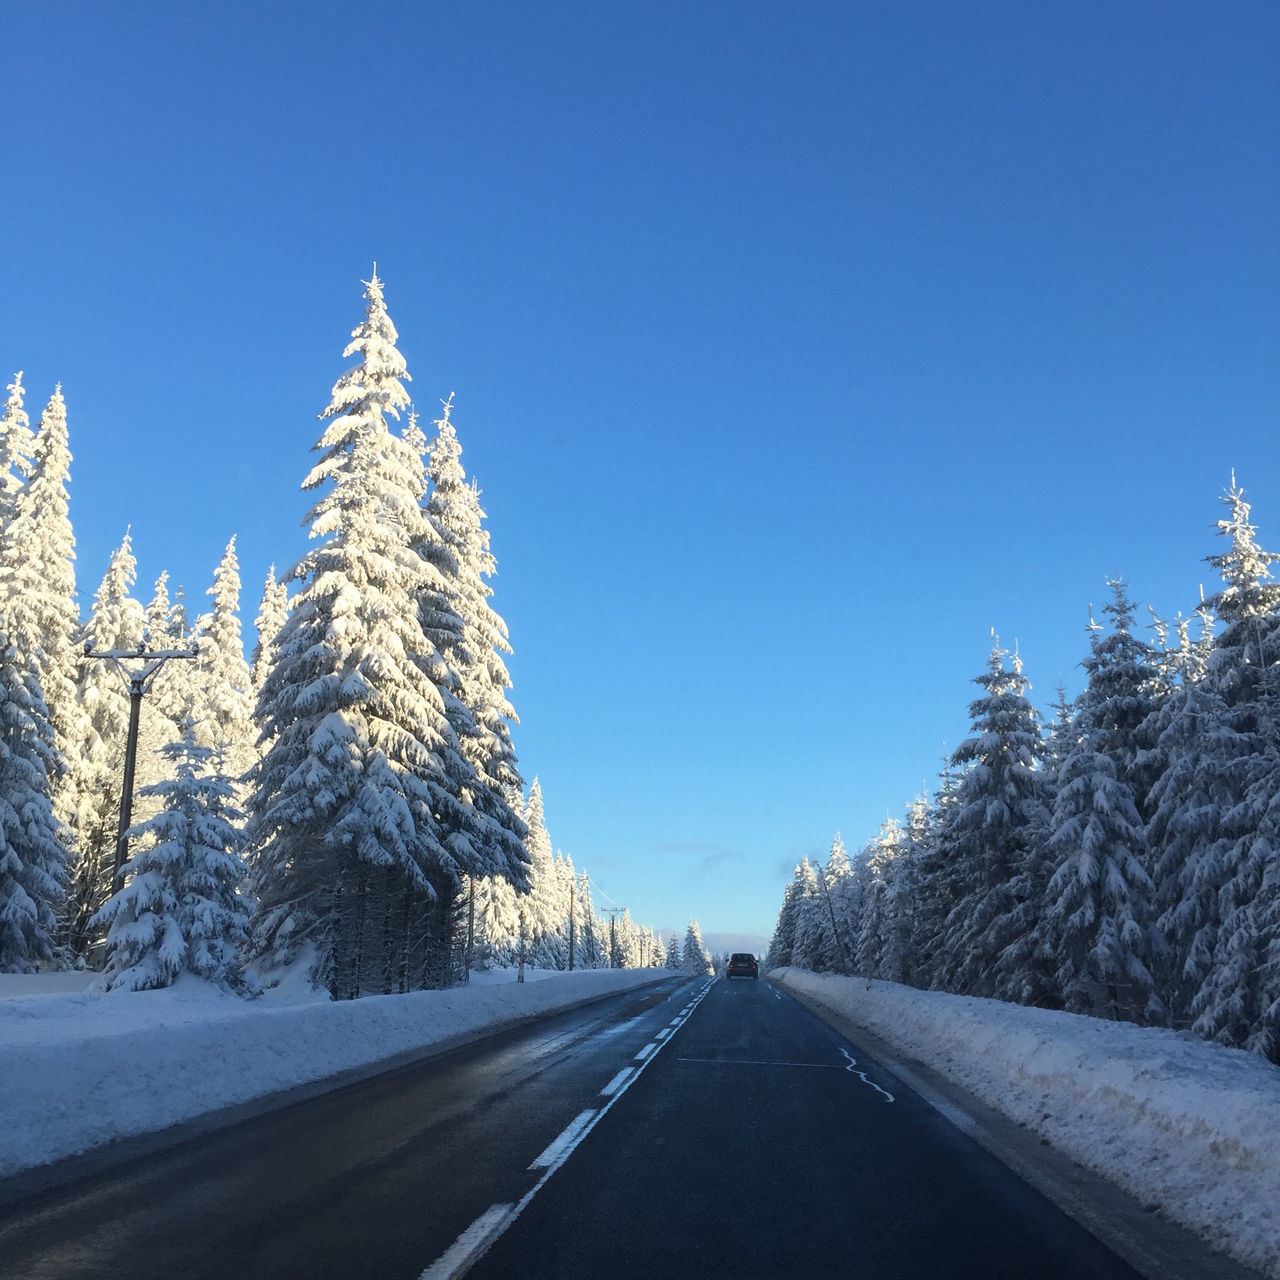 Beauty In Nature Blue Bluesky Clear Sky Cold Temperature Day Freezing Holiday Horizon Over Water Landscape Nature No People Ontheroad Outdoors Road Roadtrip Scenics Snow The Way Forward Transportation Tree Trees Winter Winter Winterwonderland